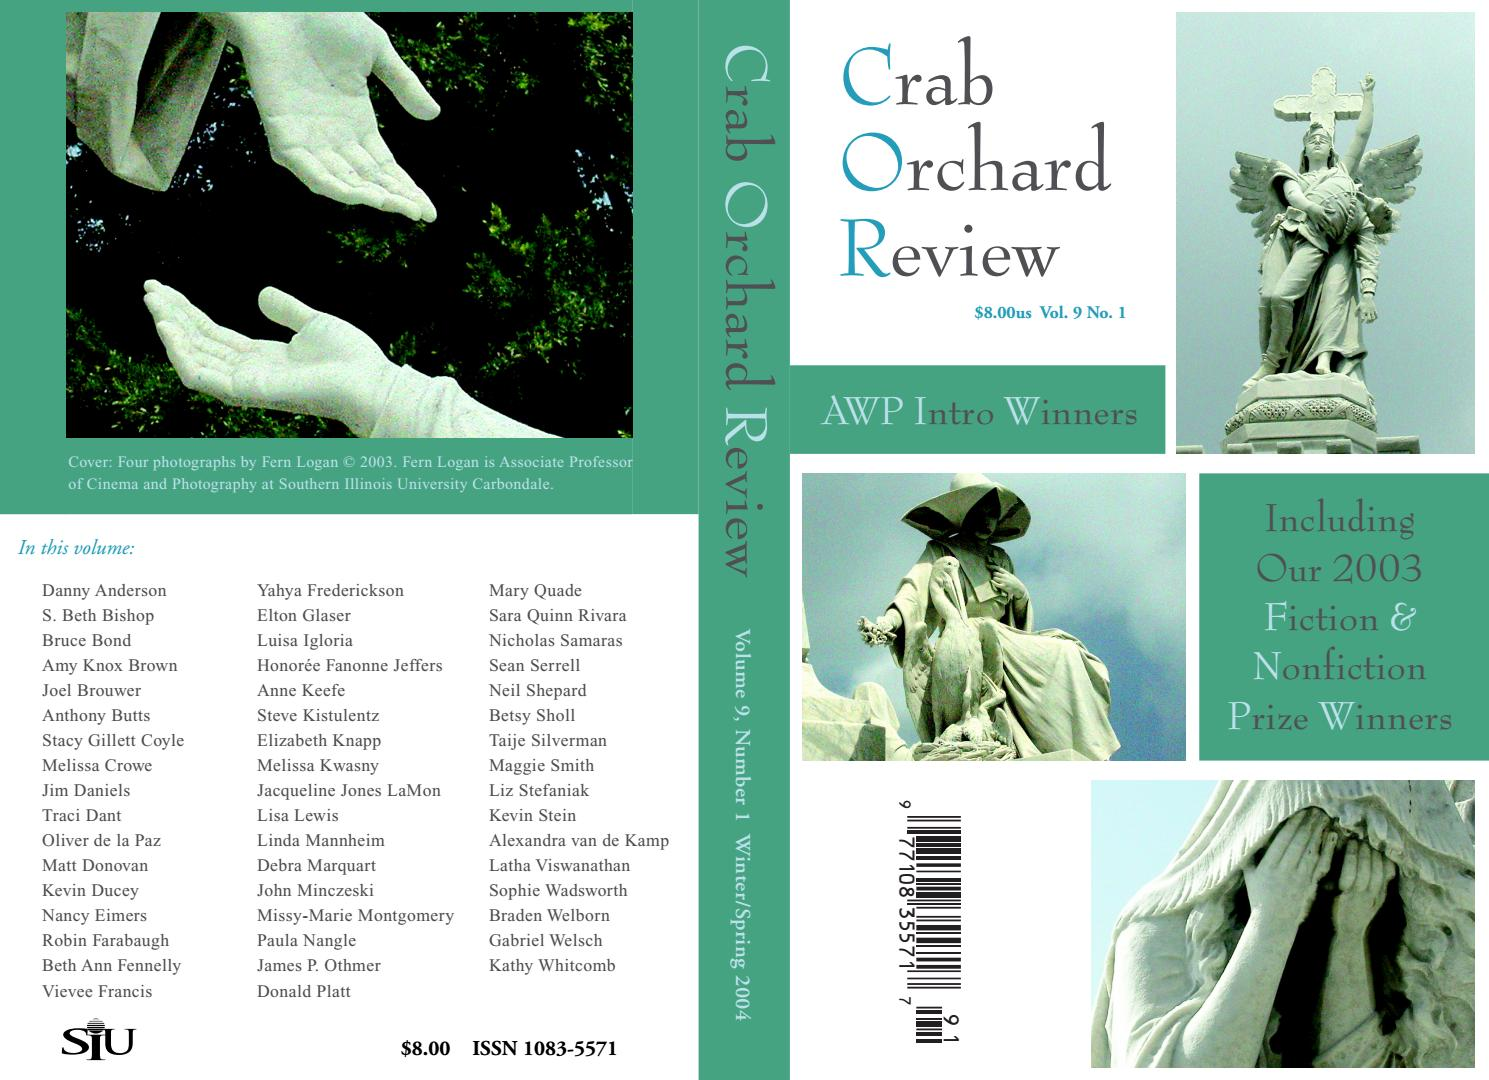 Crab Orchard Review Vol 9 No 1 W/S 2004 by Crab Orchard